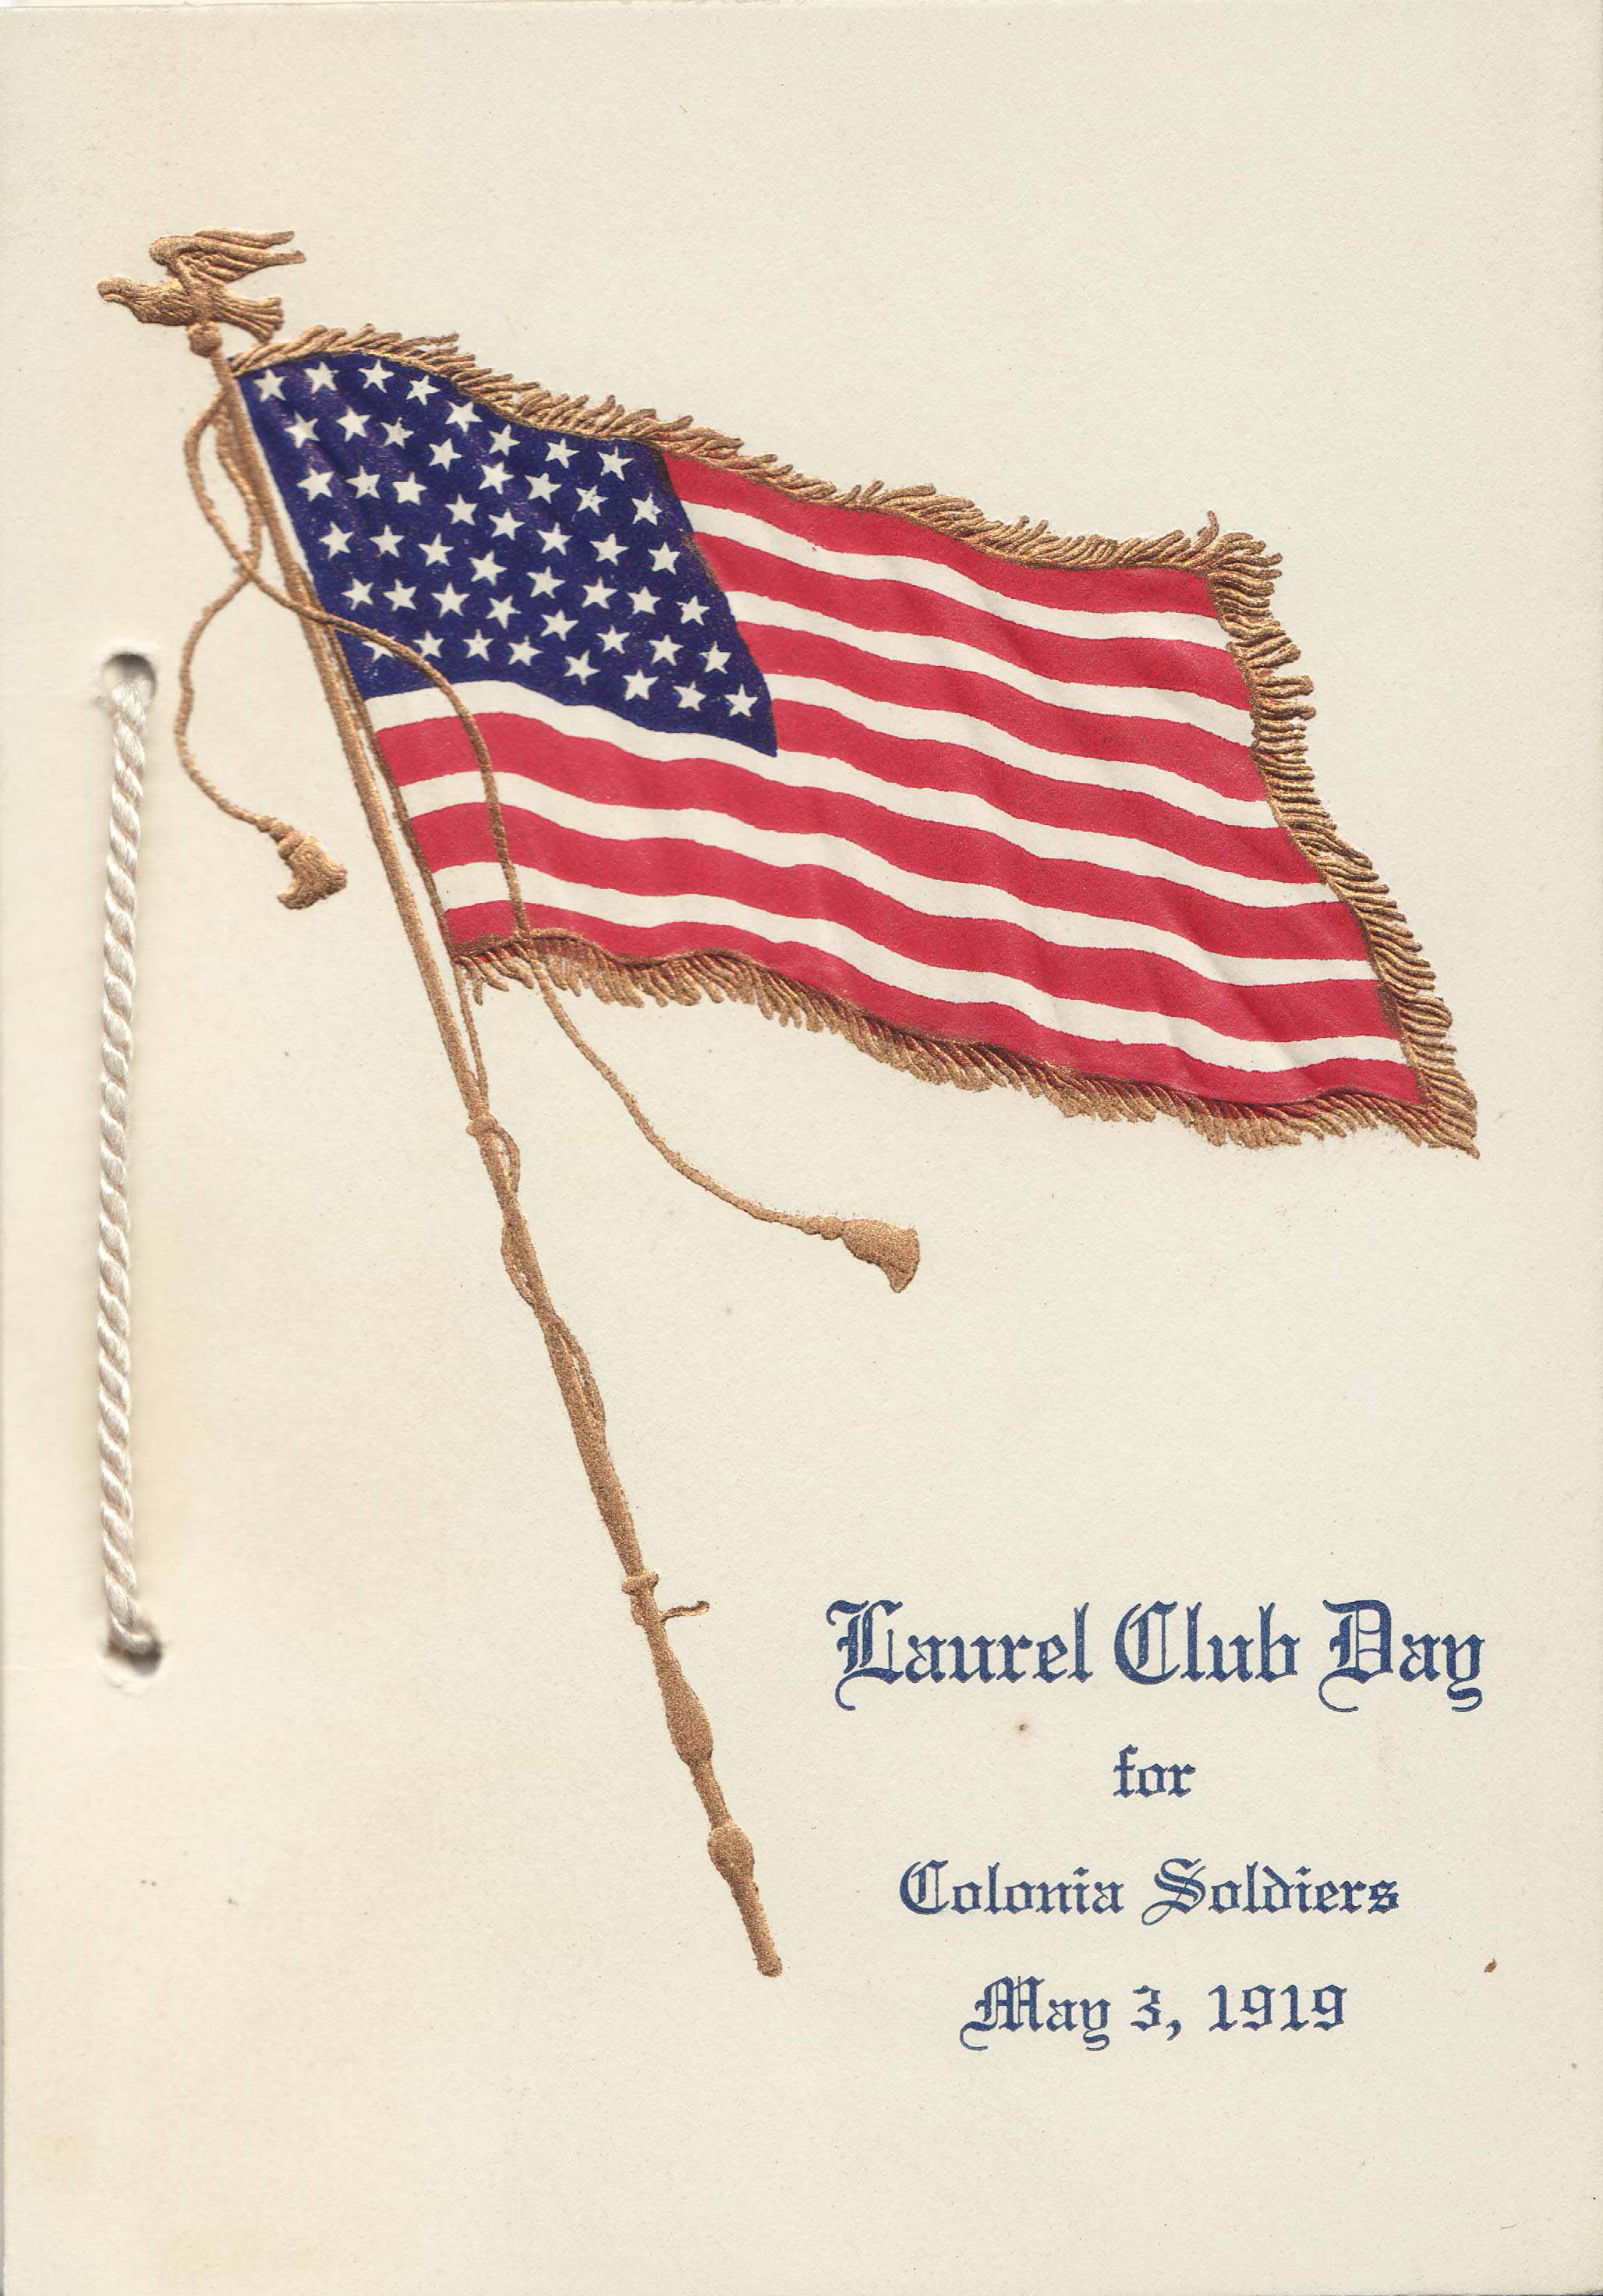 Booklet for the May 3, 1919 Laurel Club Day for veterans.  Image courtesy: Johnson & Johnson Archives.